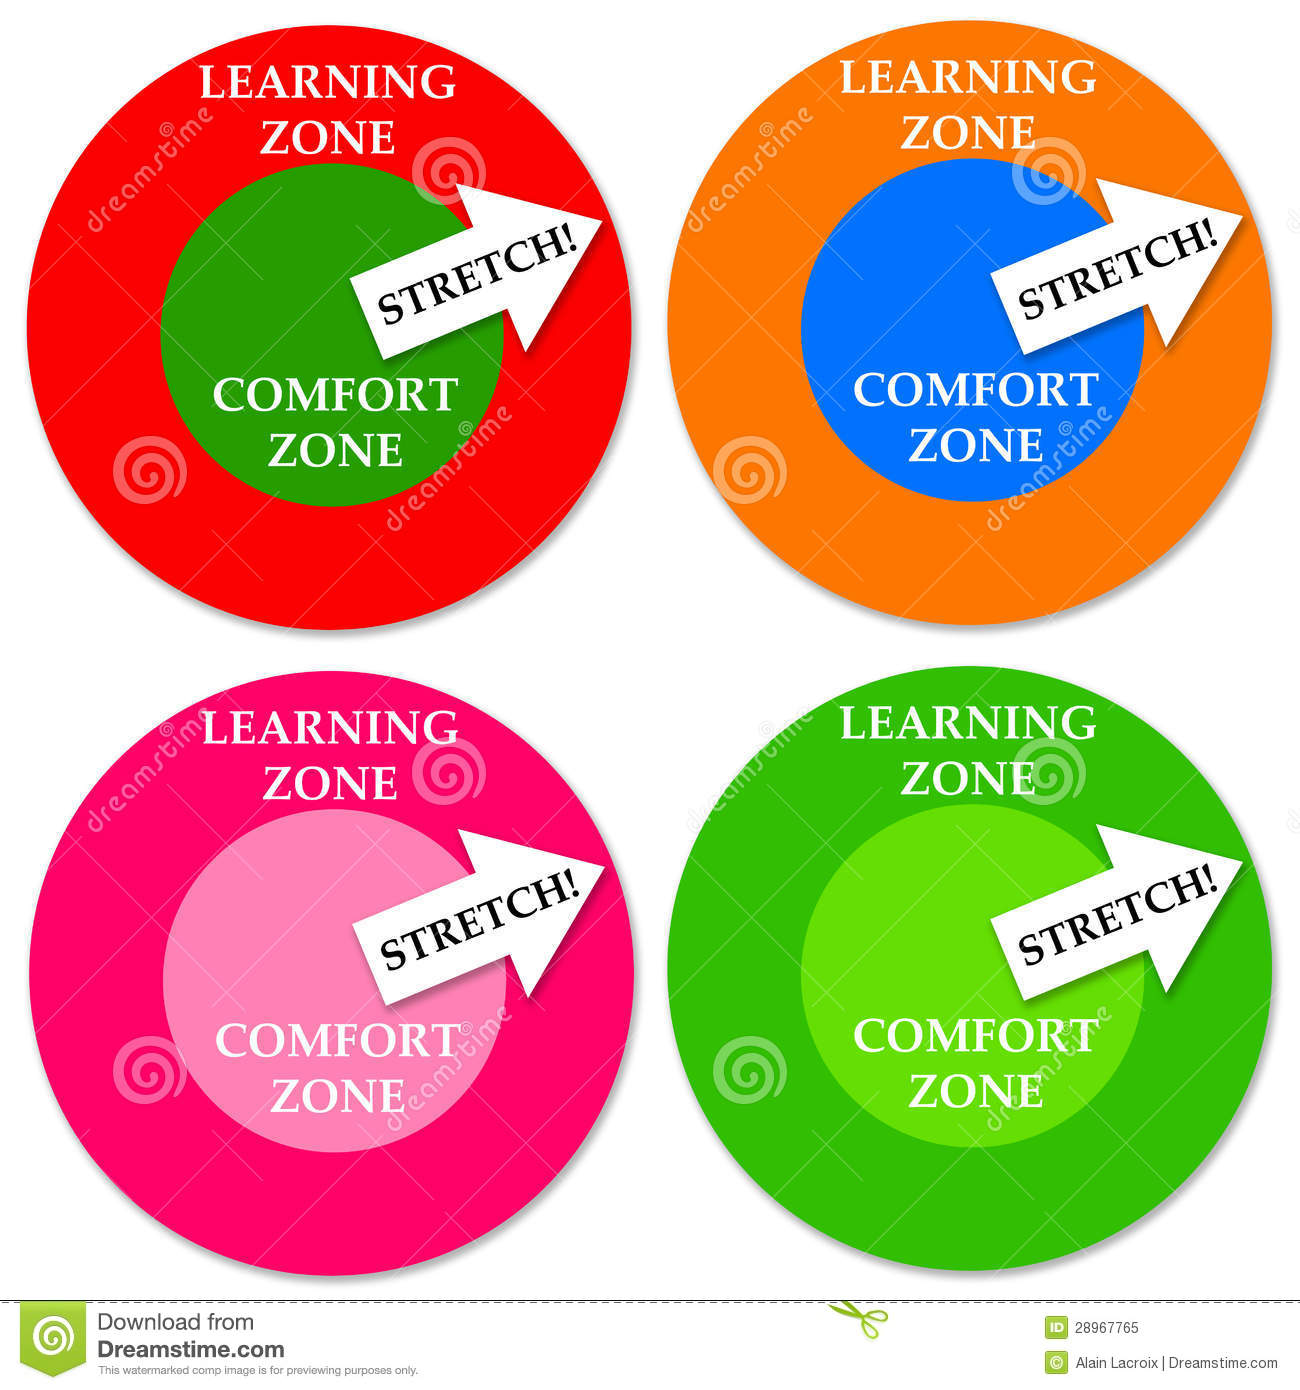 Stretch from comfort zone to learning zone.